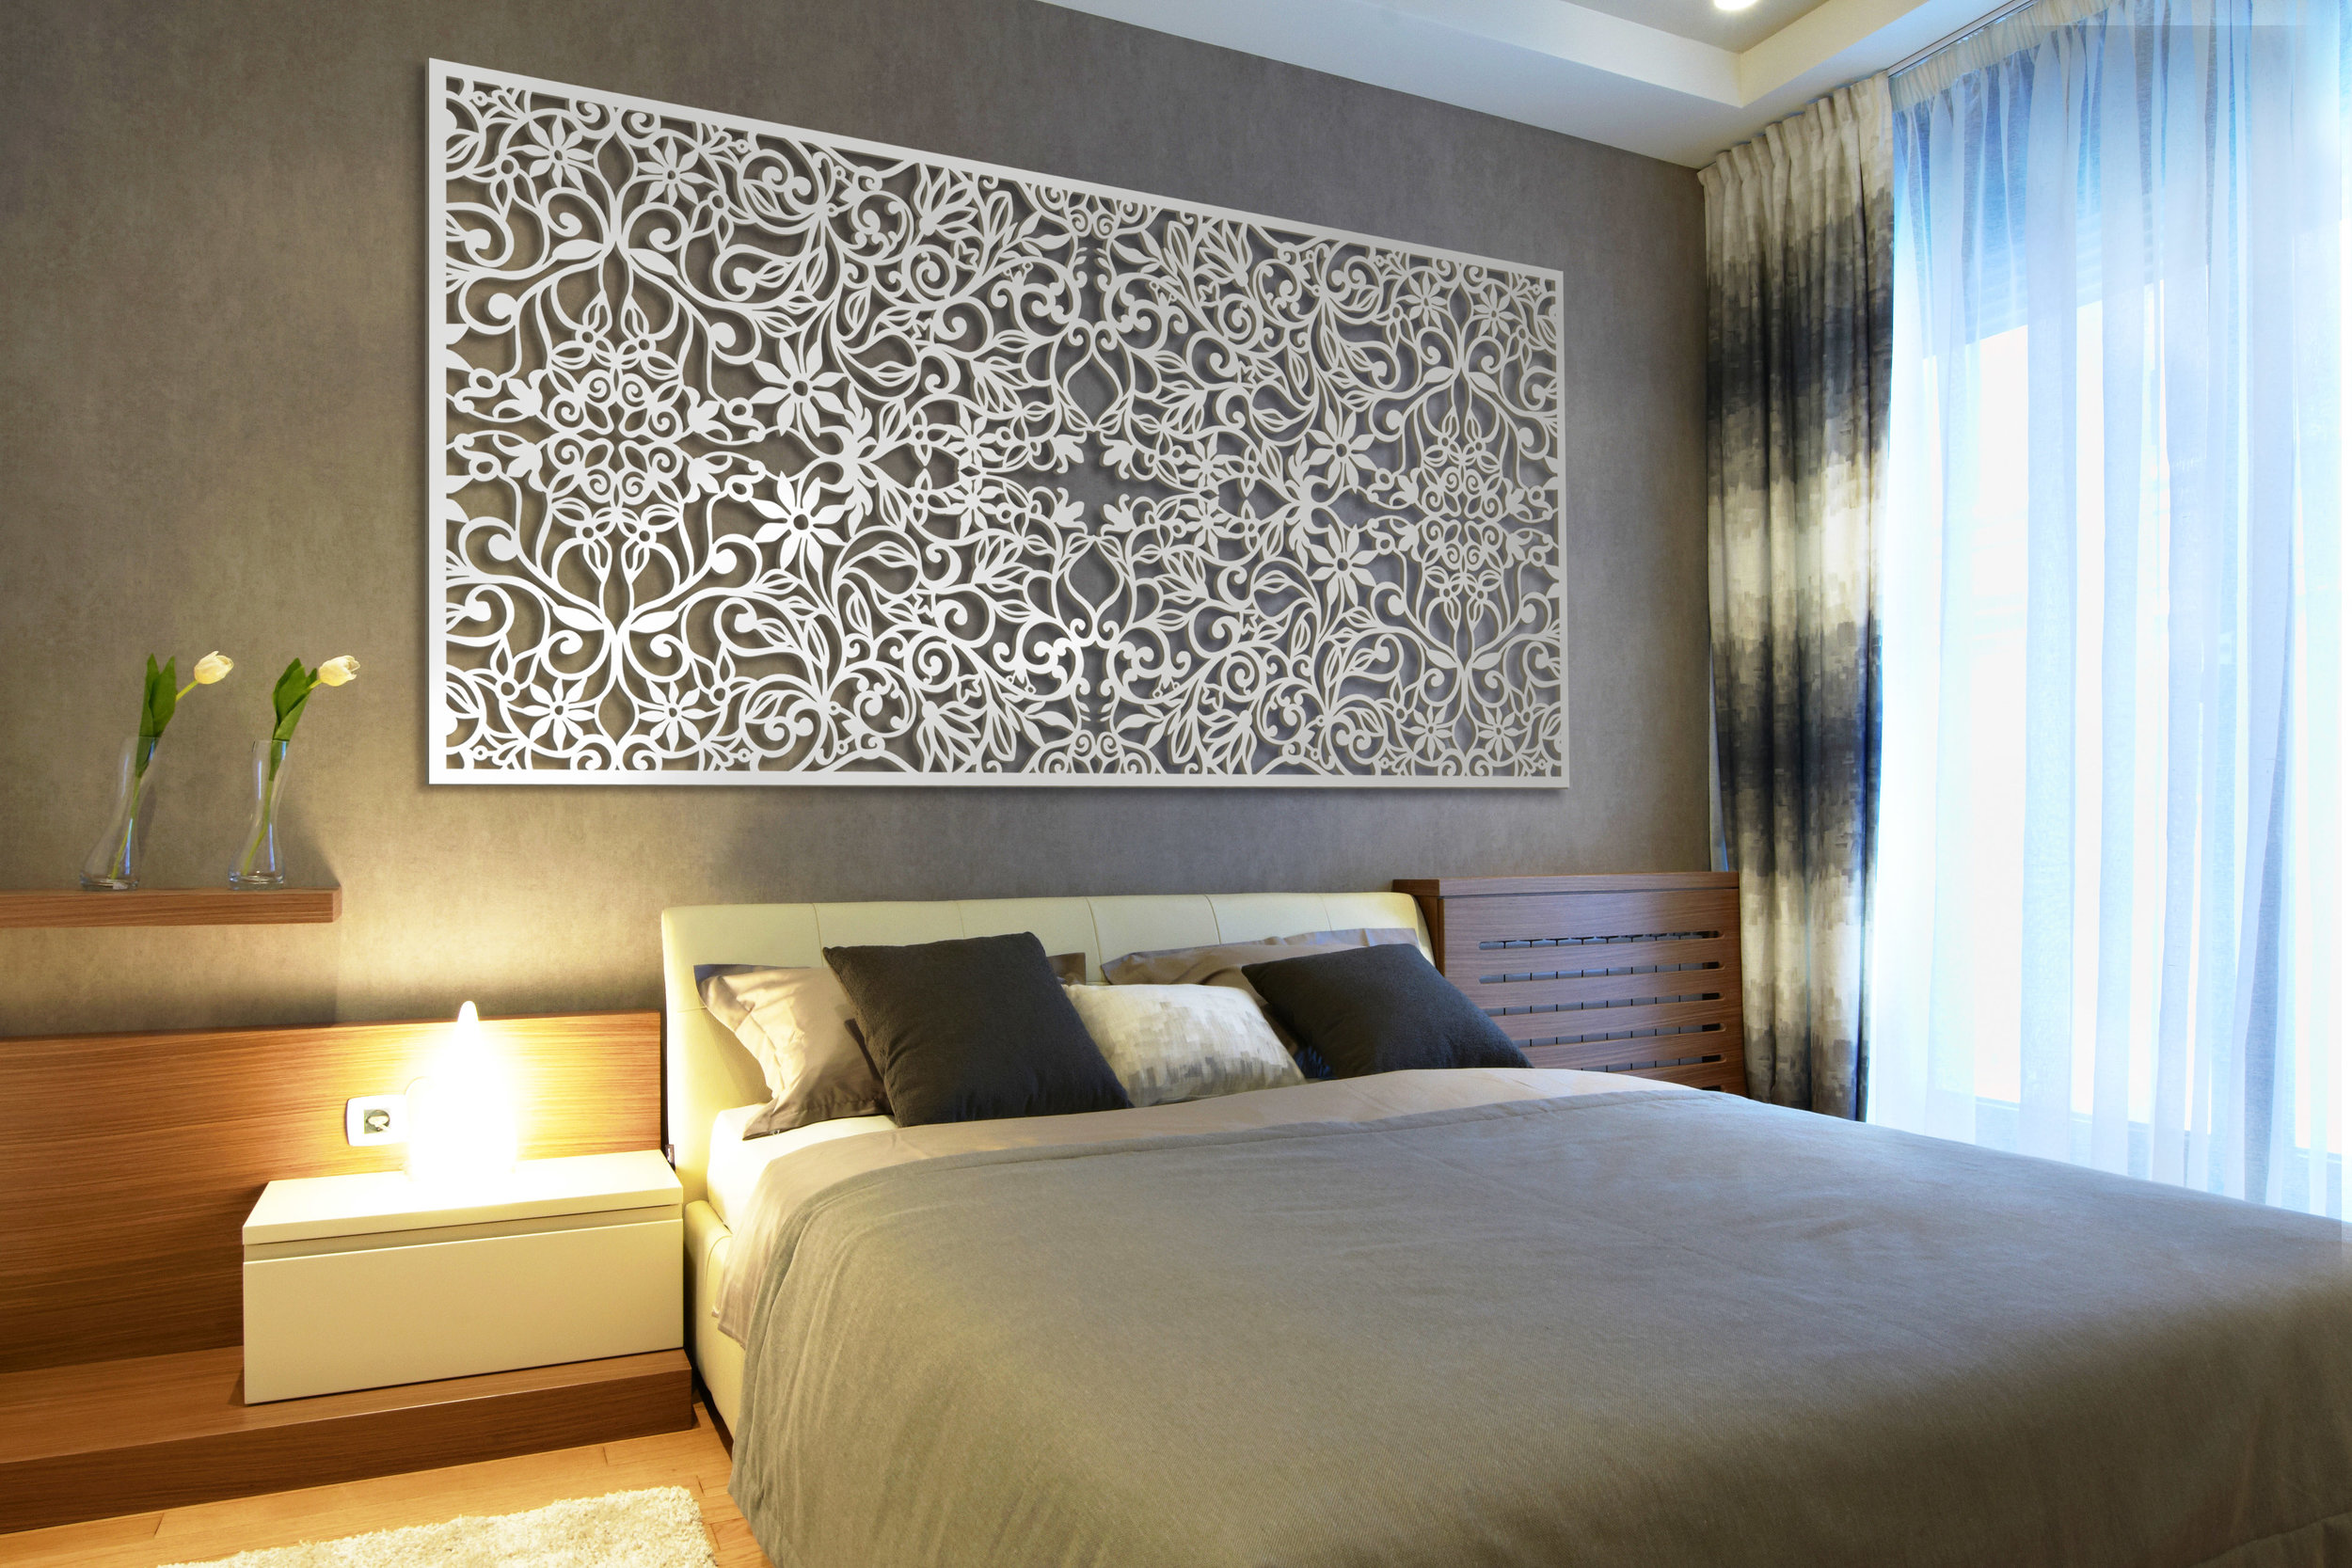 Installation Rendering C   Spring Vines decorative hotel wall panel - painted